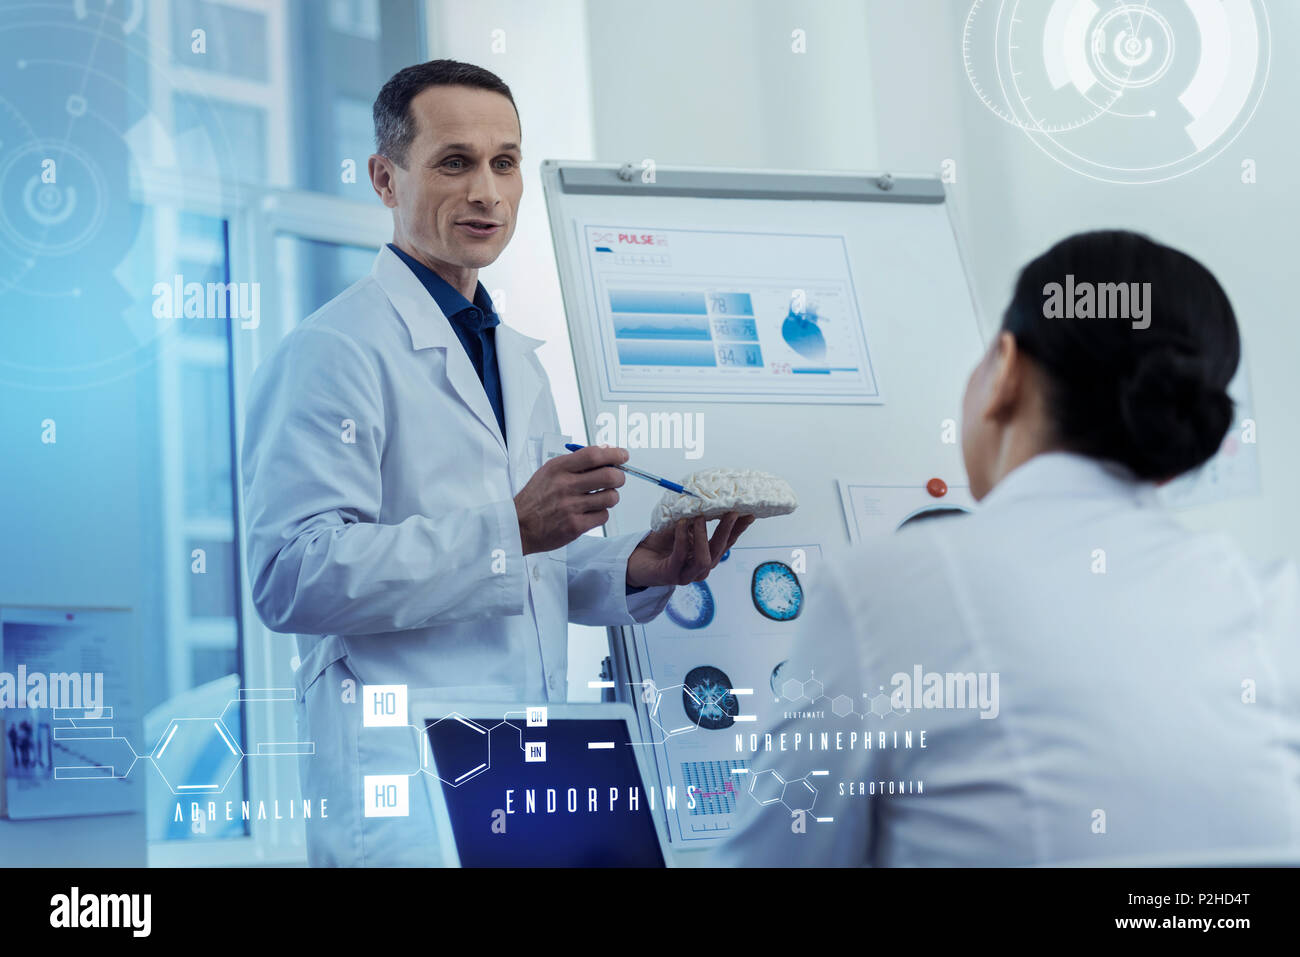 Friendly doctor holding a brain model and giving a lecture to colleagues - Stock Image